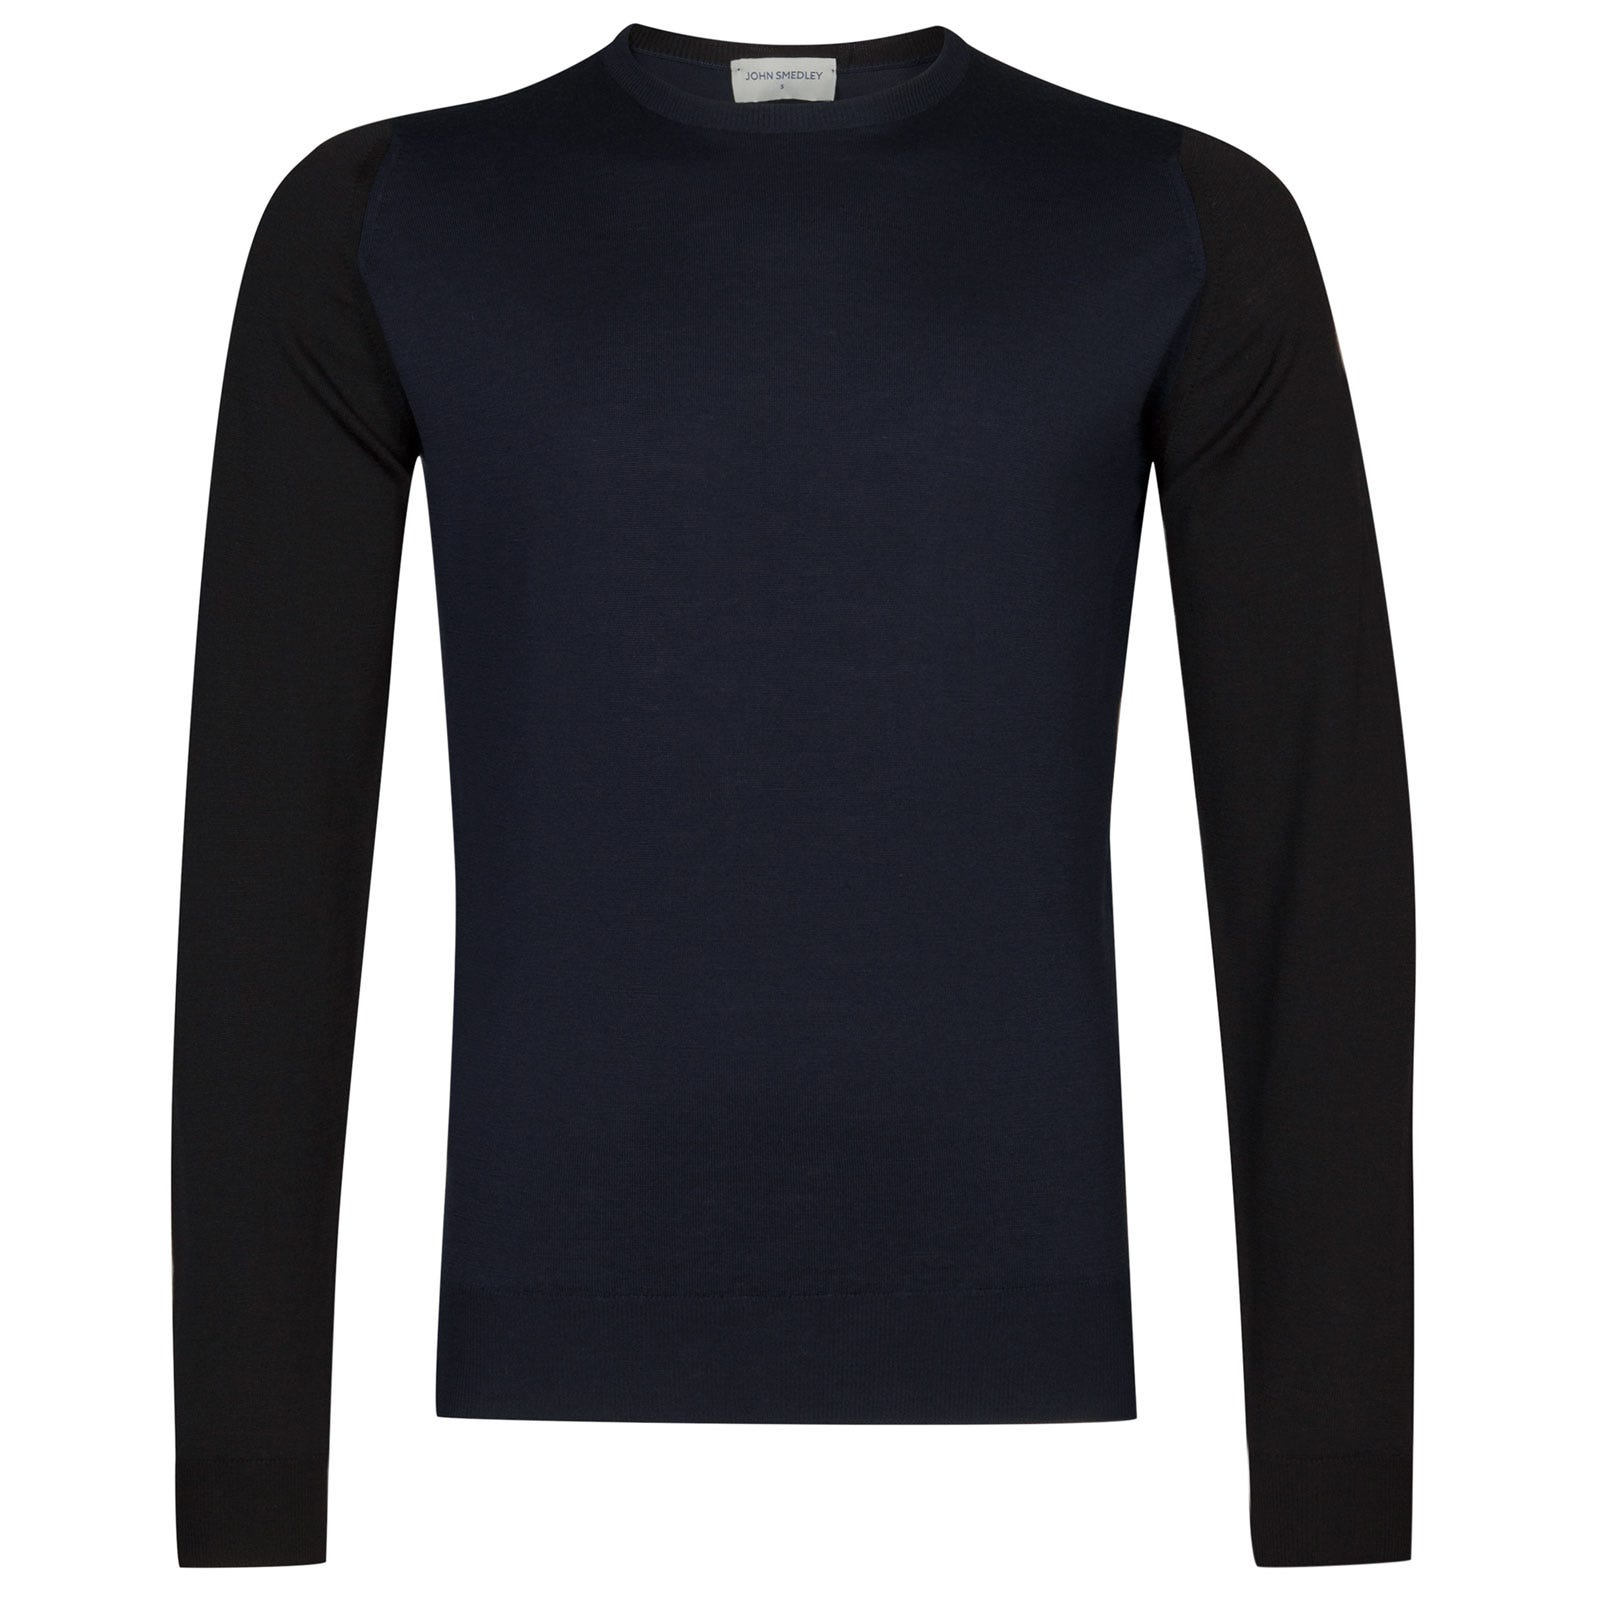 John Smedley hindlow Merino Wool Pullover in Black/Midnight-XL